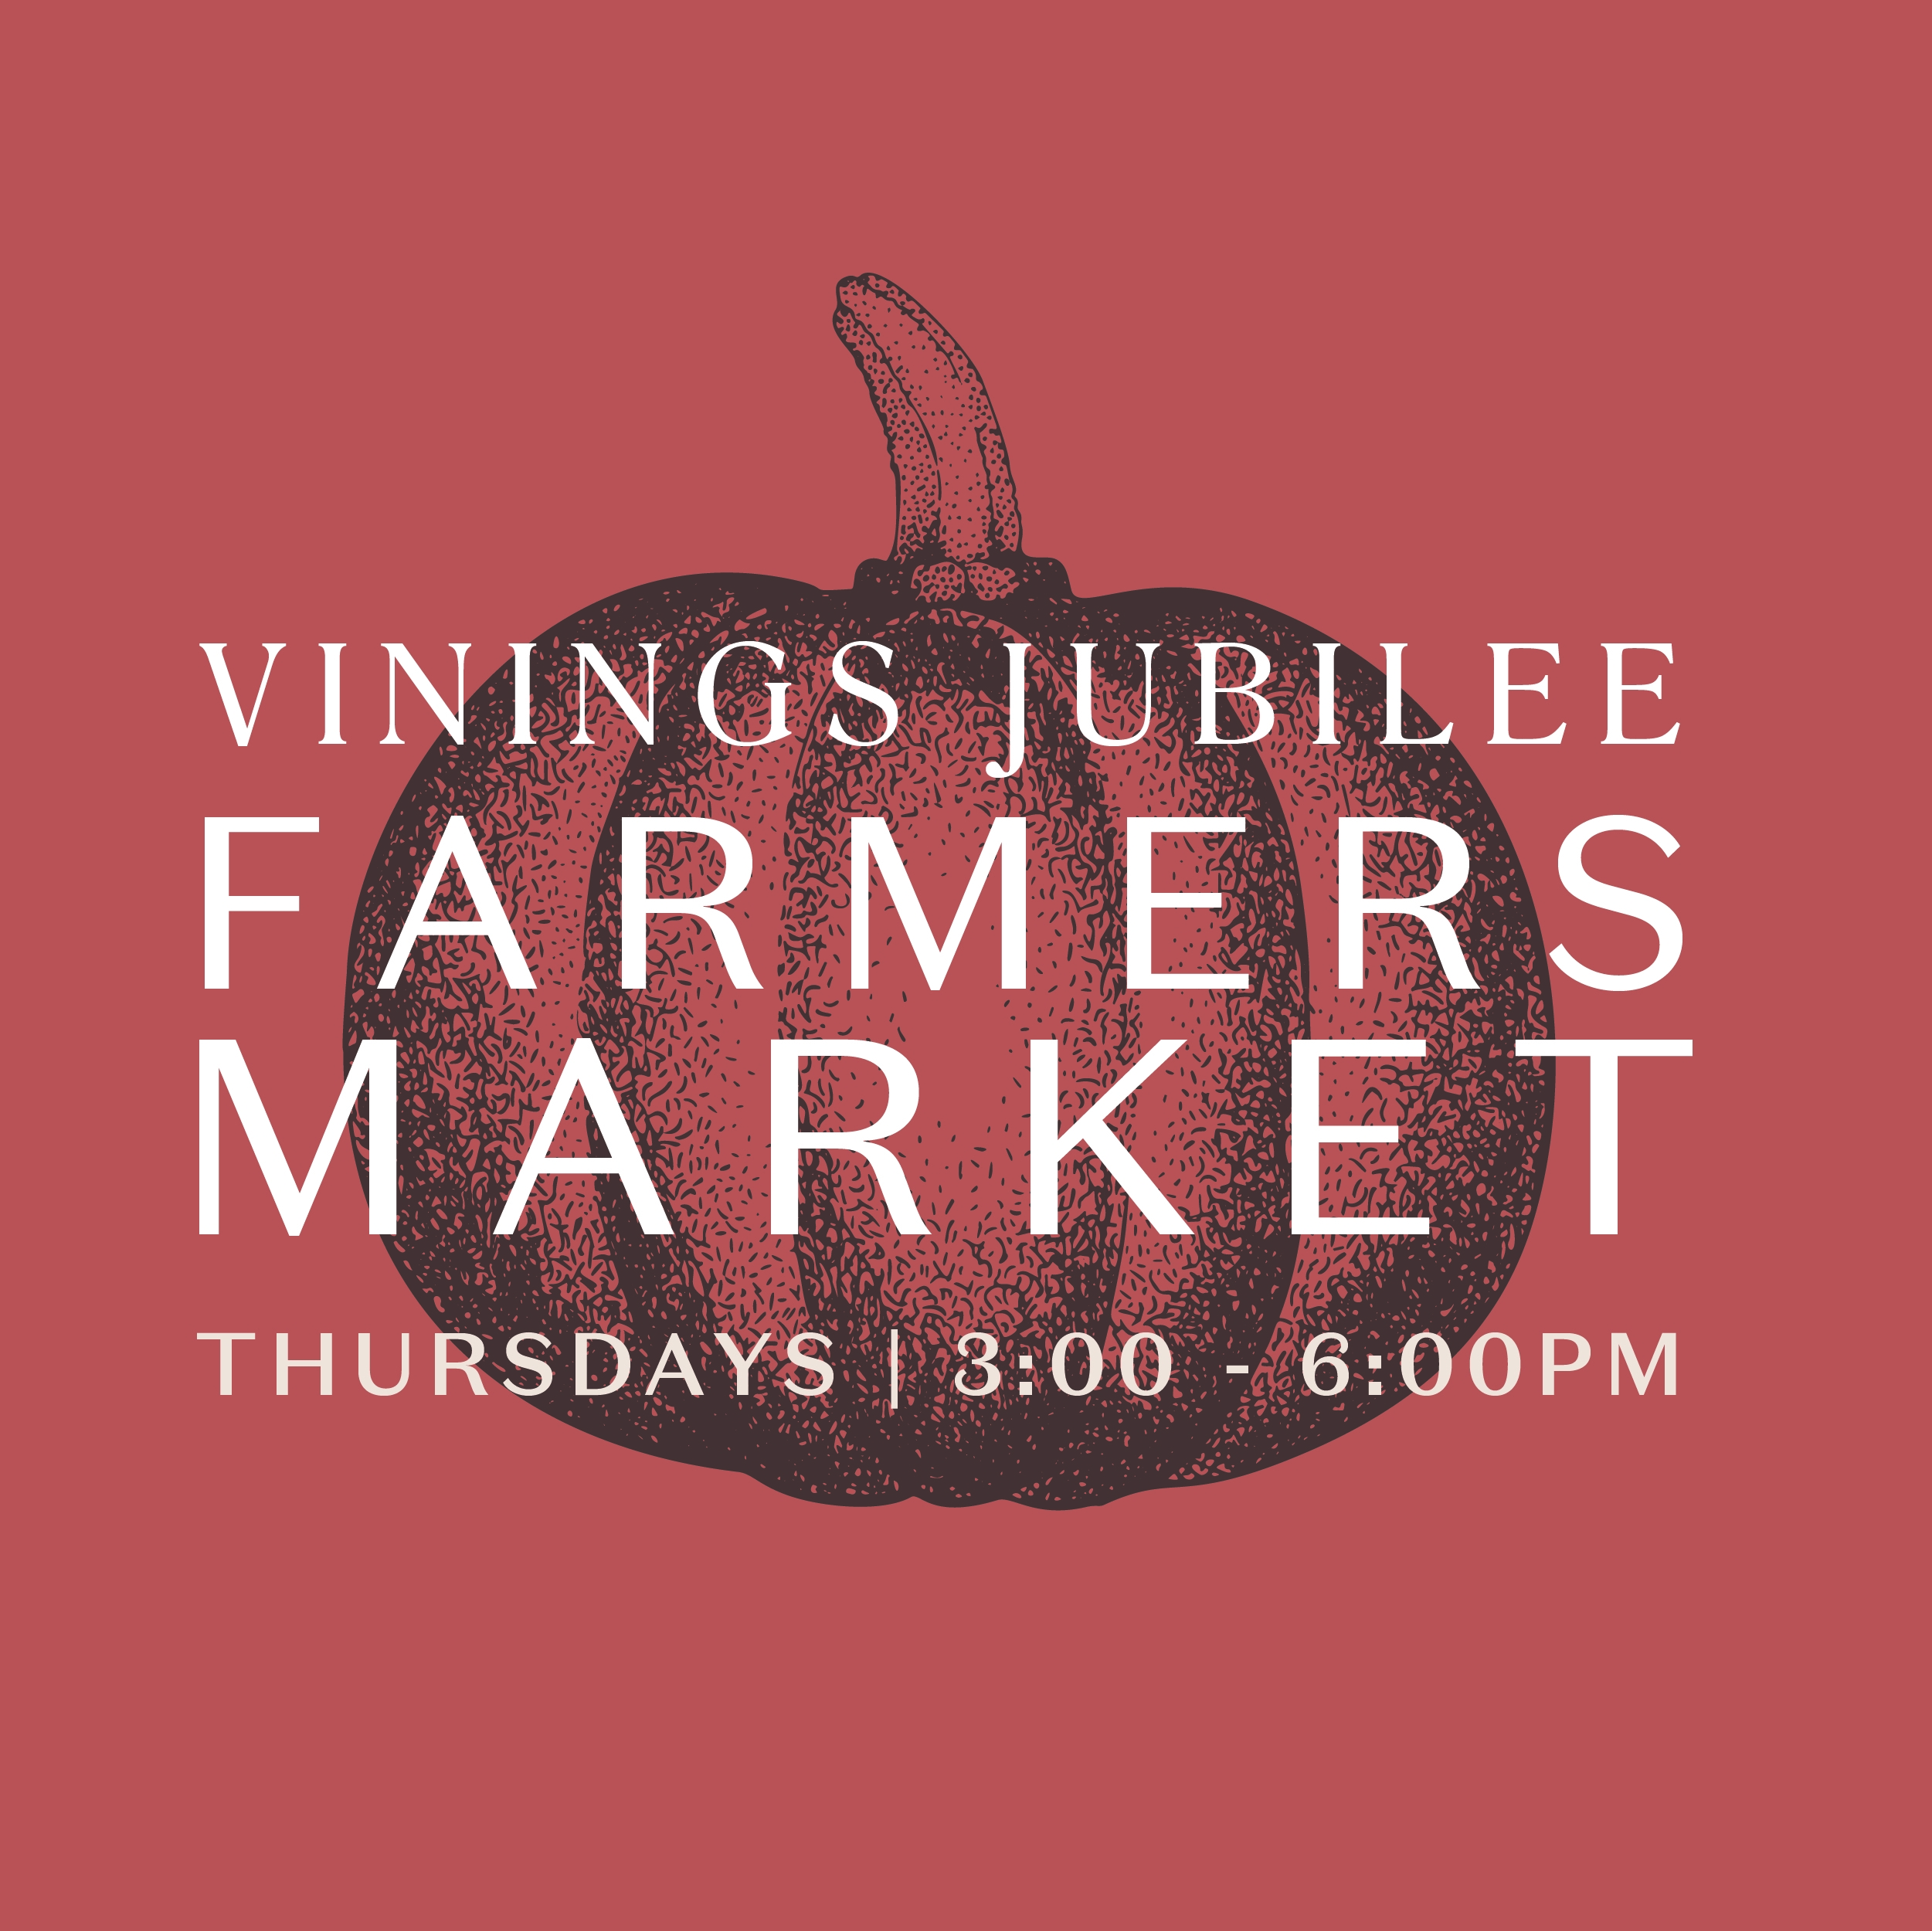 Get your fall fix at Vinings Jubilee's Farmers Market